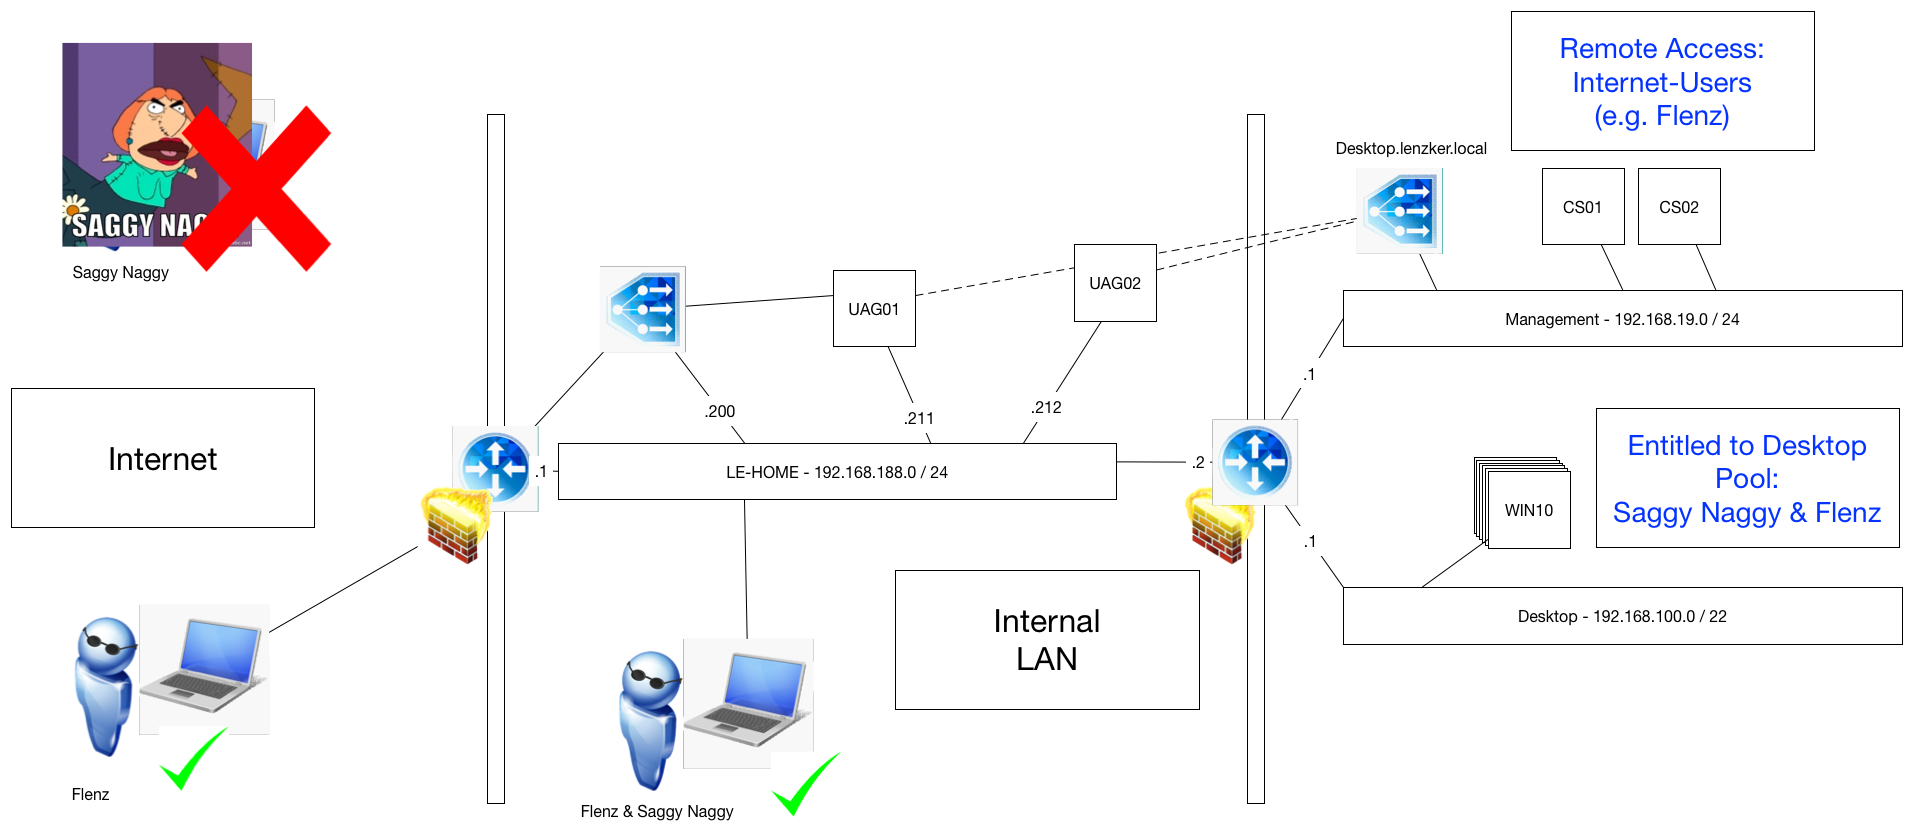 Lenzkers Vmware Horizon Guide Implementation Restrict Internet Connection Diagram Remote Desktop From Just Navigate To The Users Section Within Administrator And Choose Access Define Which Group You Want Have Via